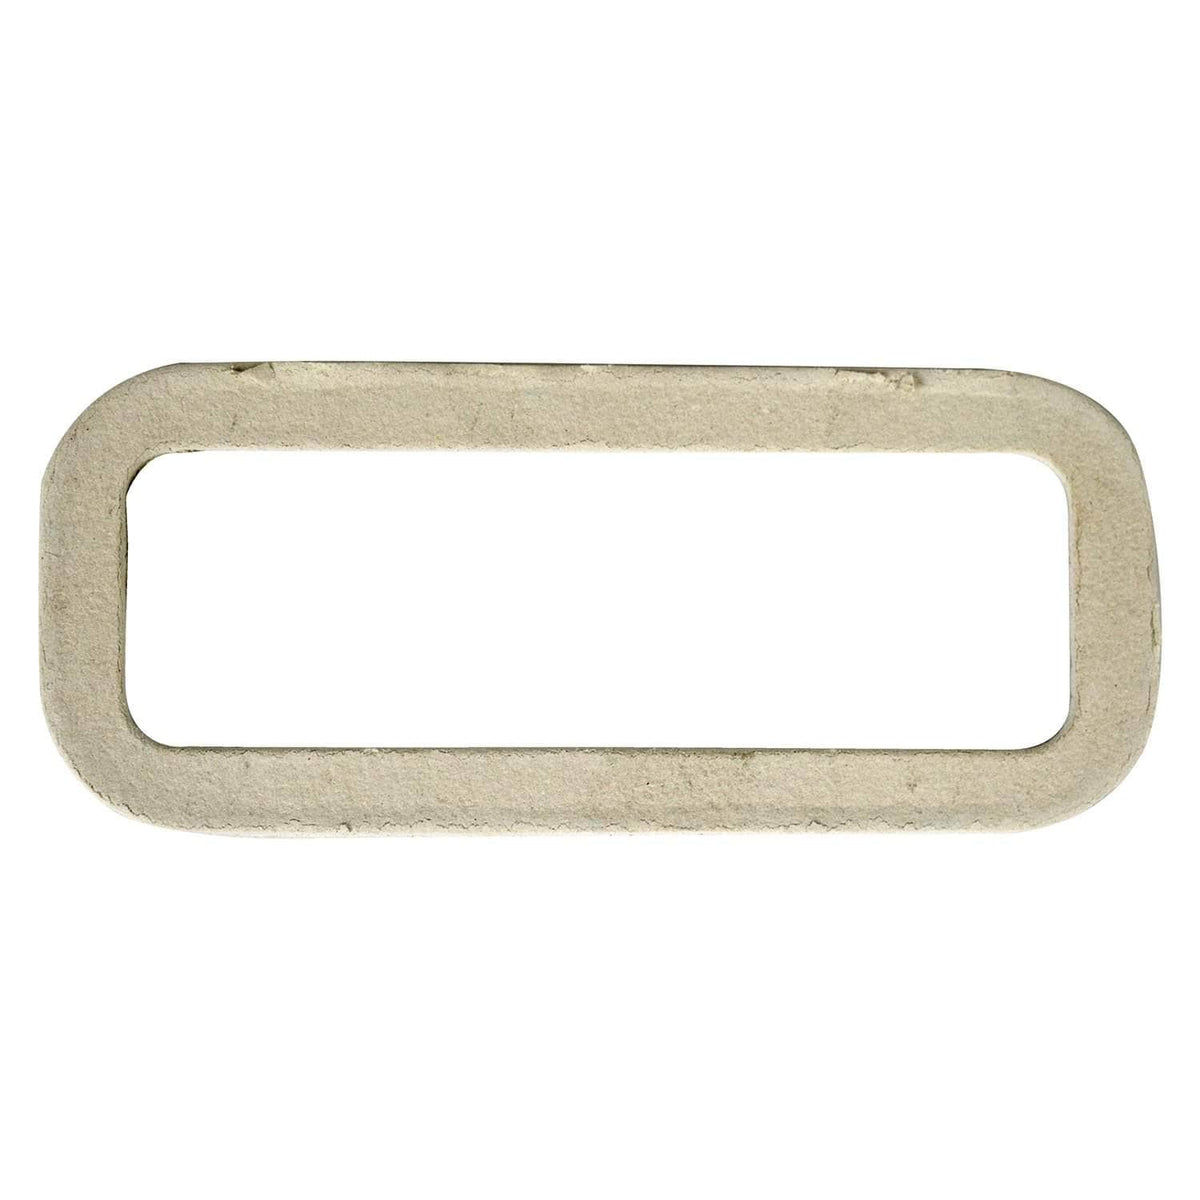 Manifold gasket for use with Aga range cookers